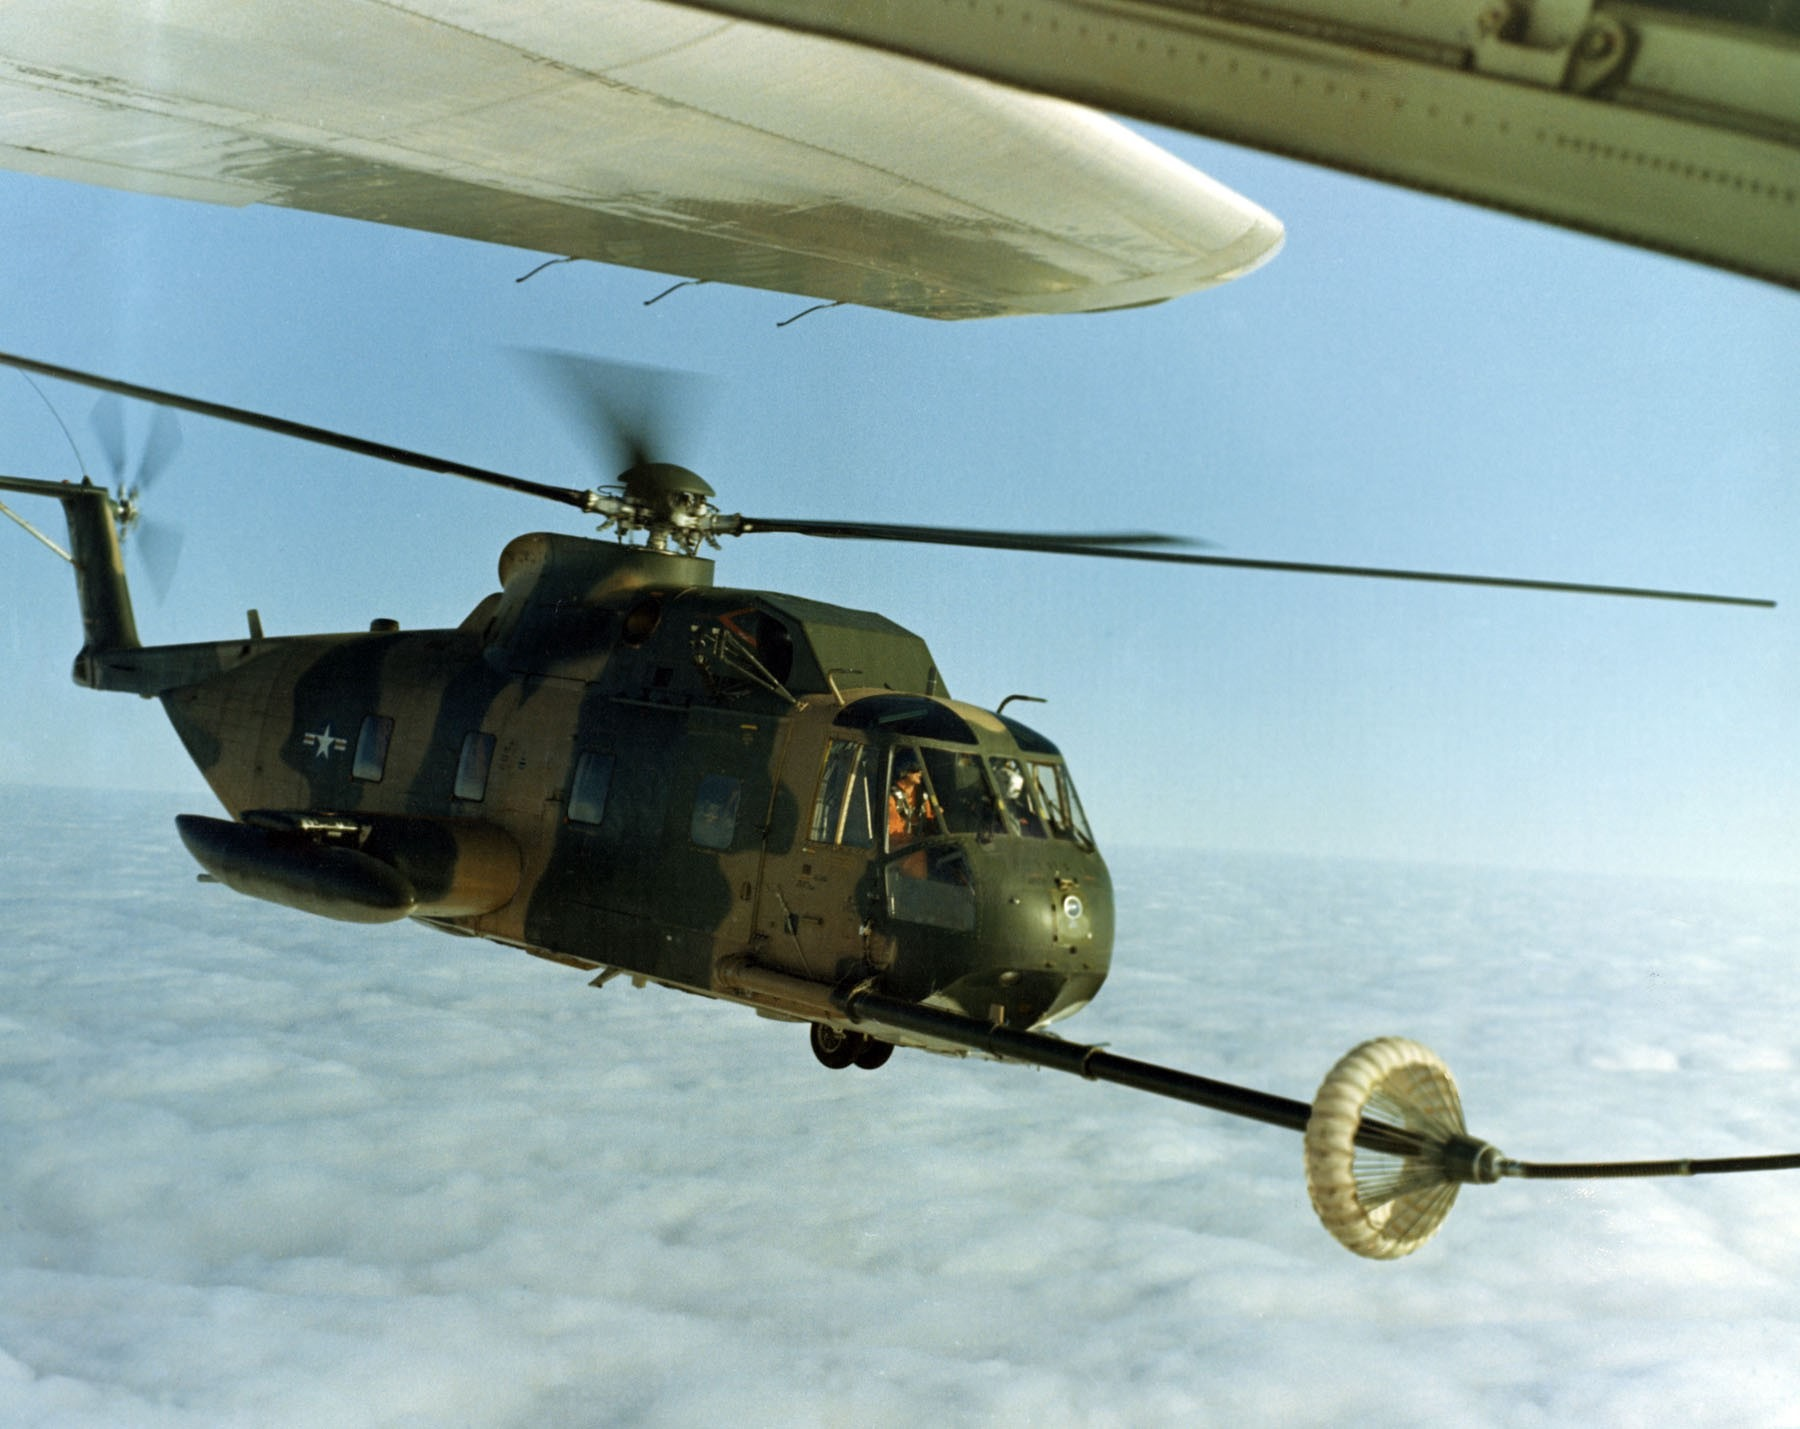 One Company Tried to Turn the U.S. Air Force's Rescue Choppers Into Gunships - Warrior Maven